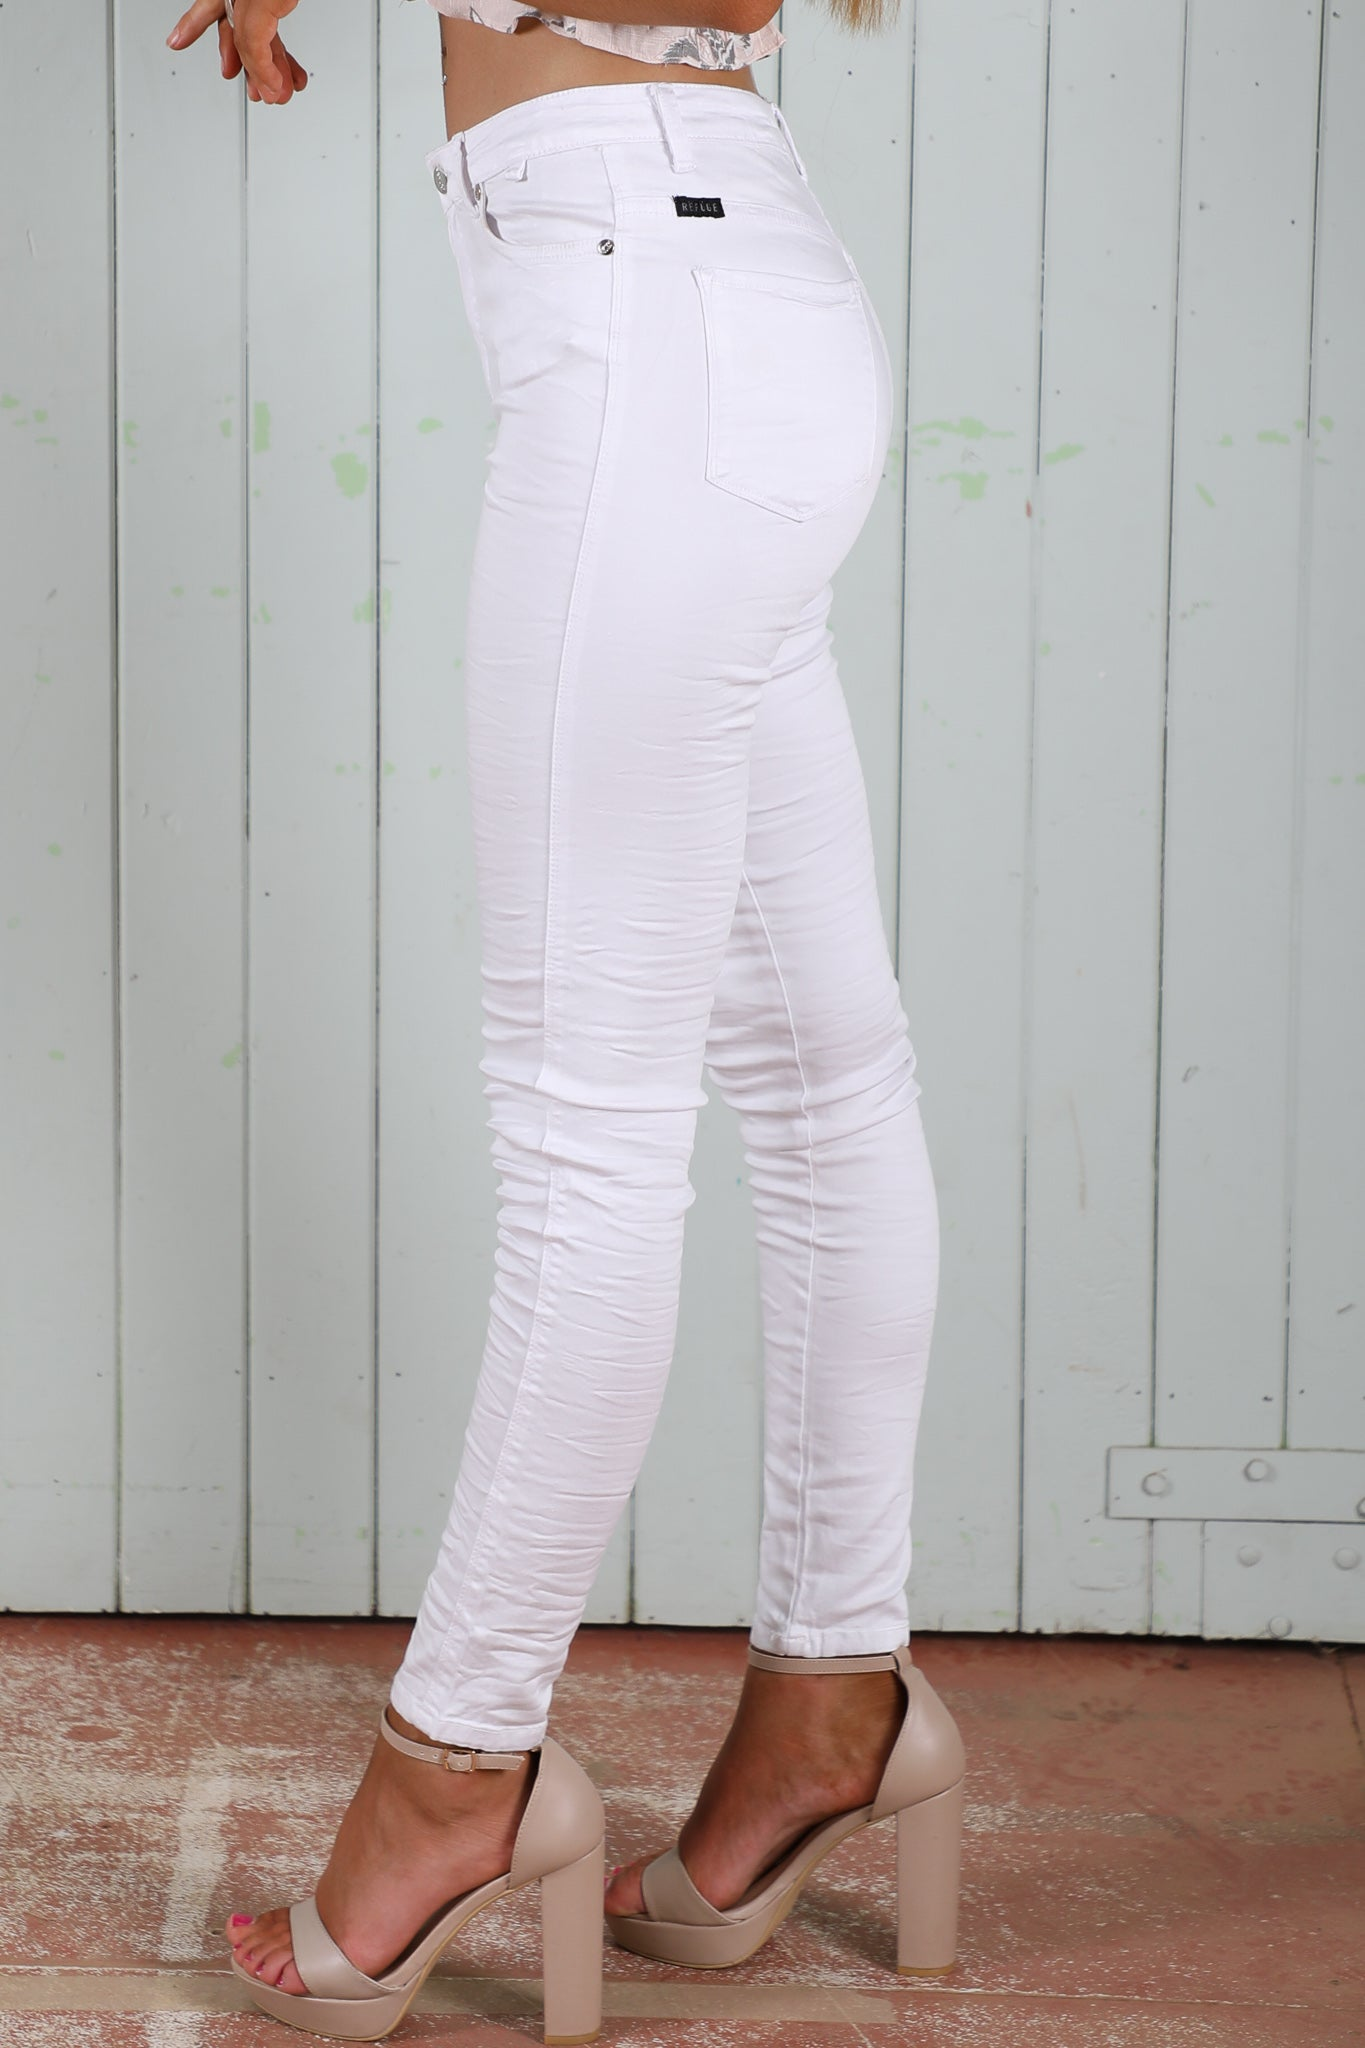 refuge gelato legs in white high waist